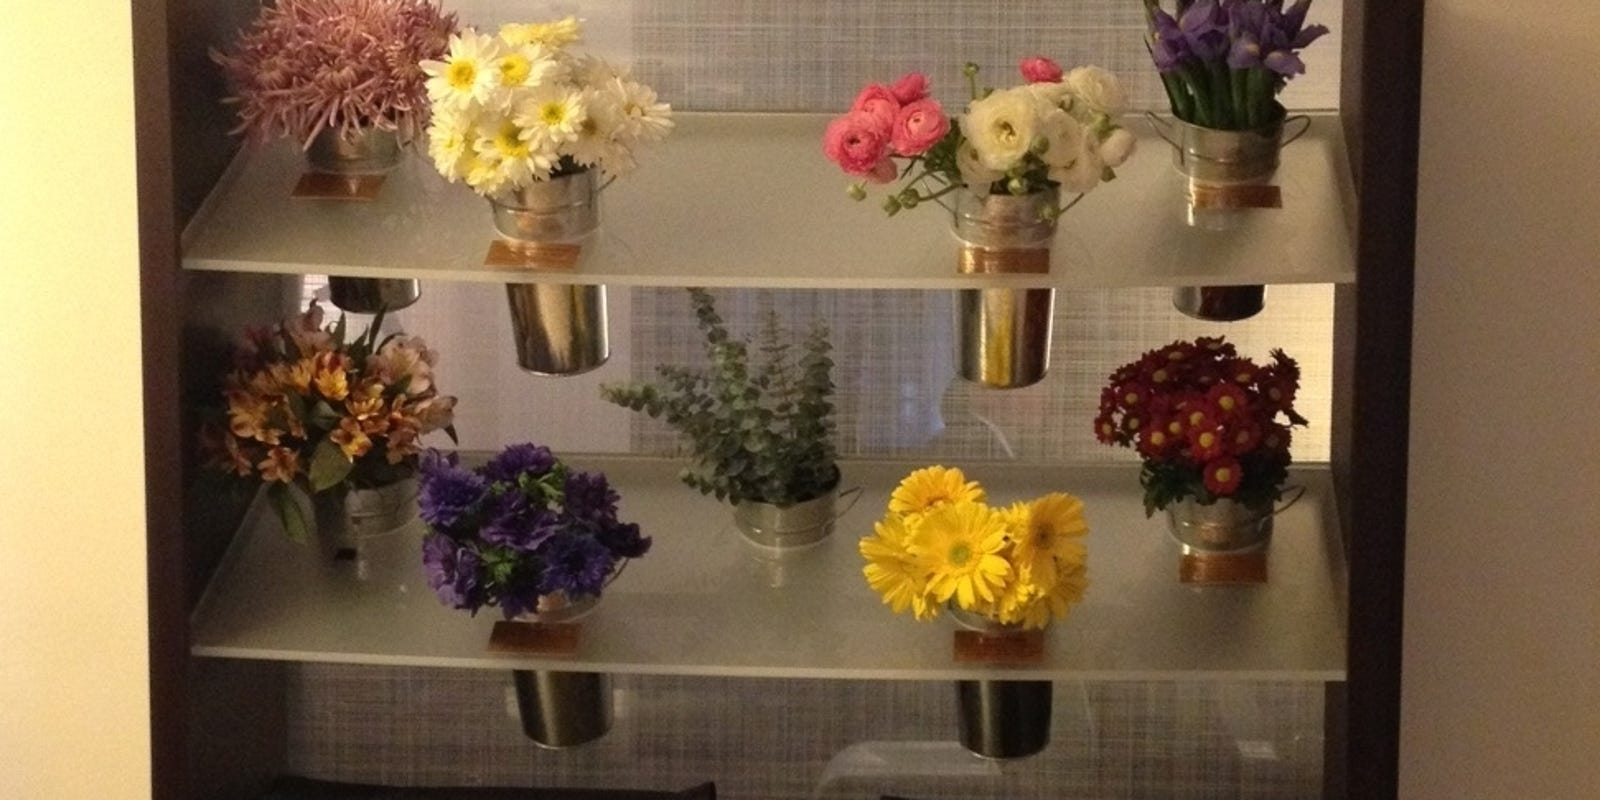 Hotels Let Guests Customize Rooms With Flowers More